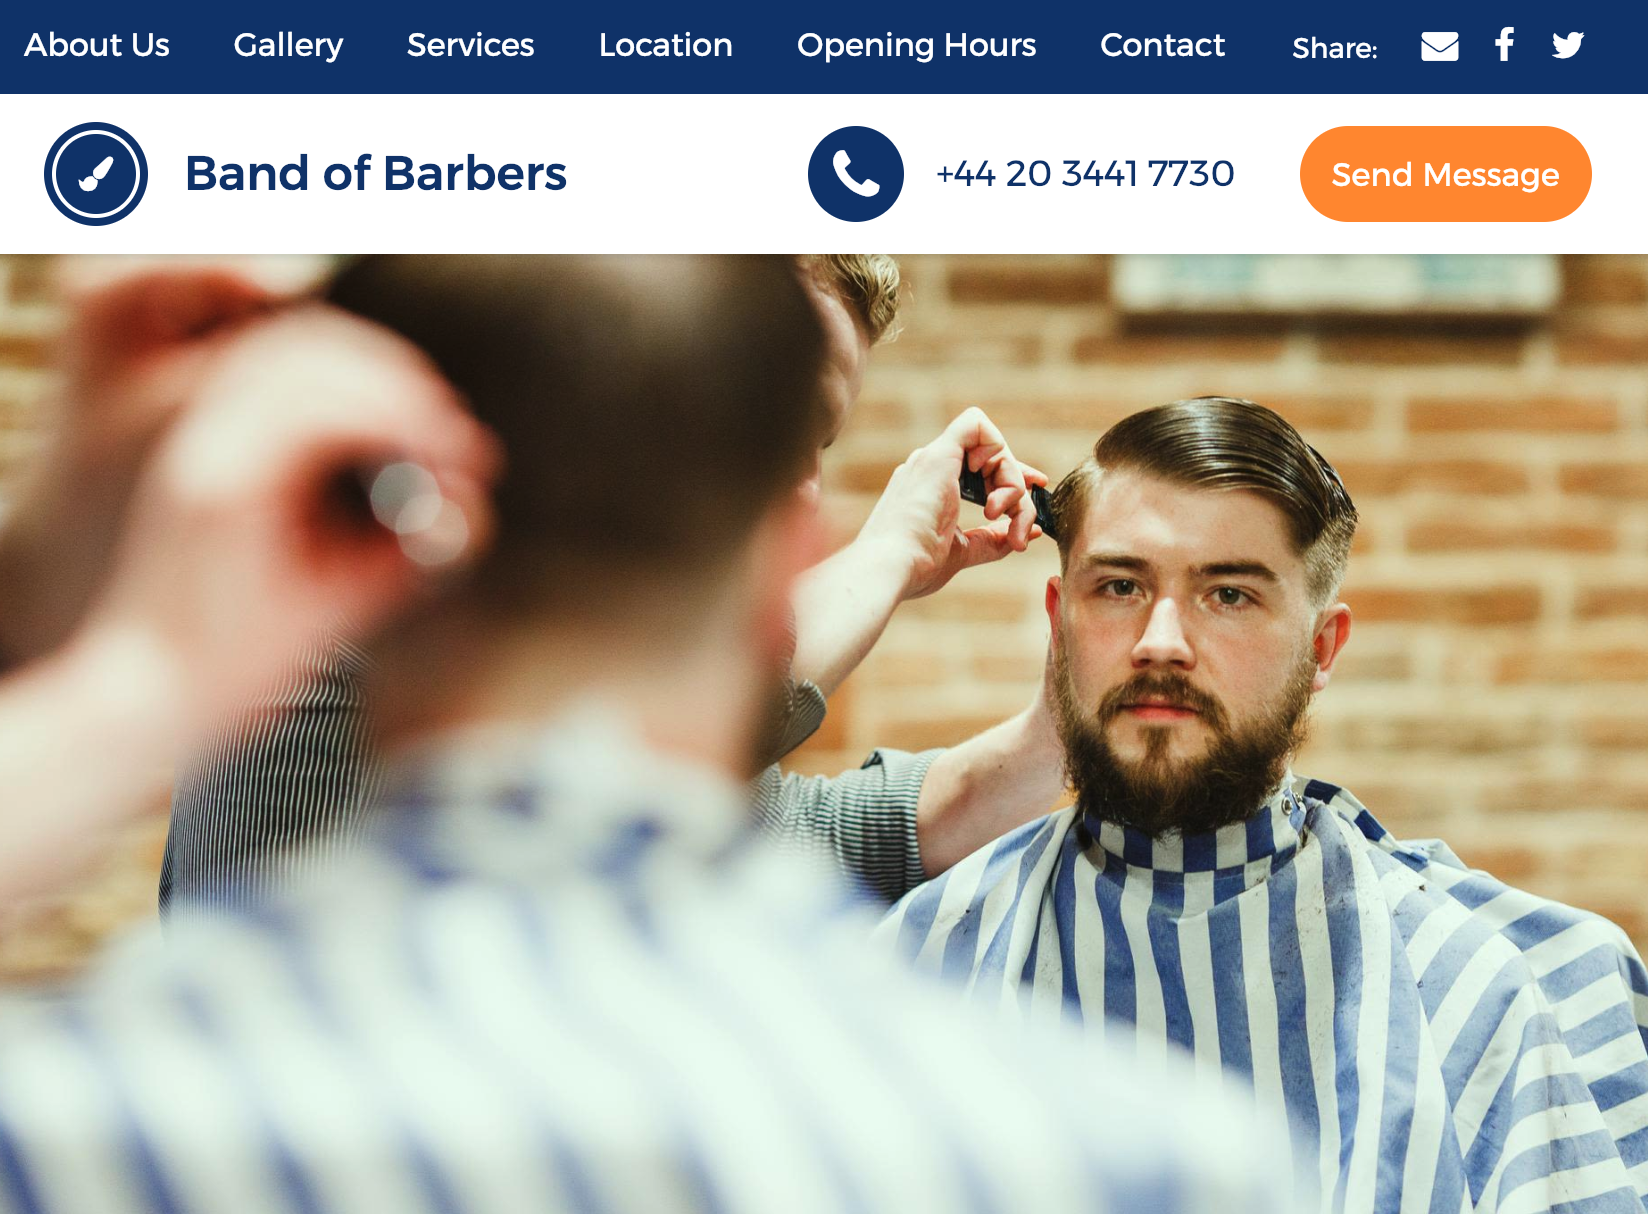 Band of Barbers